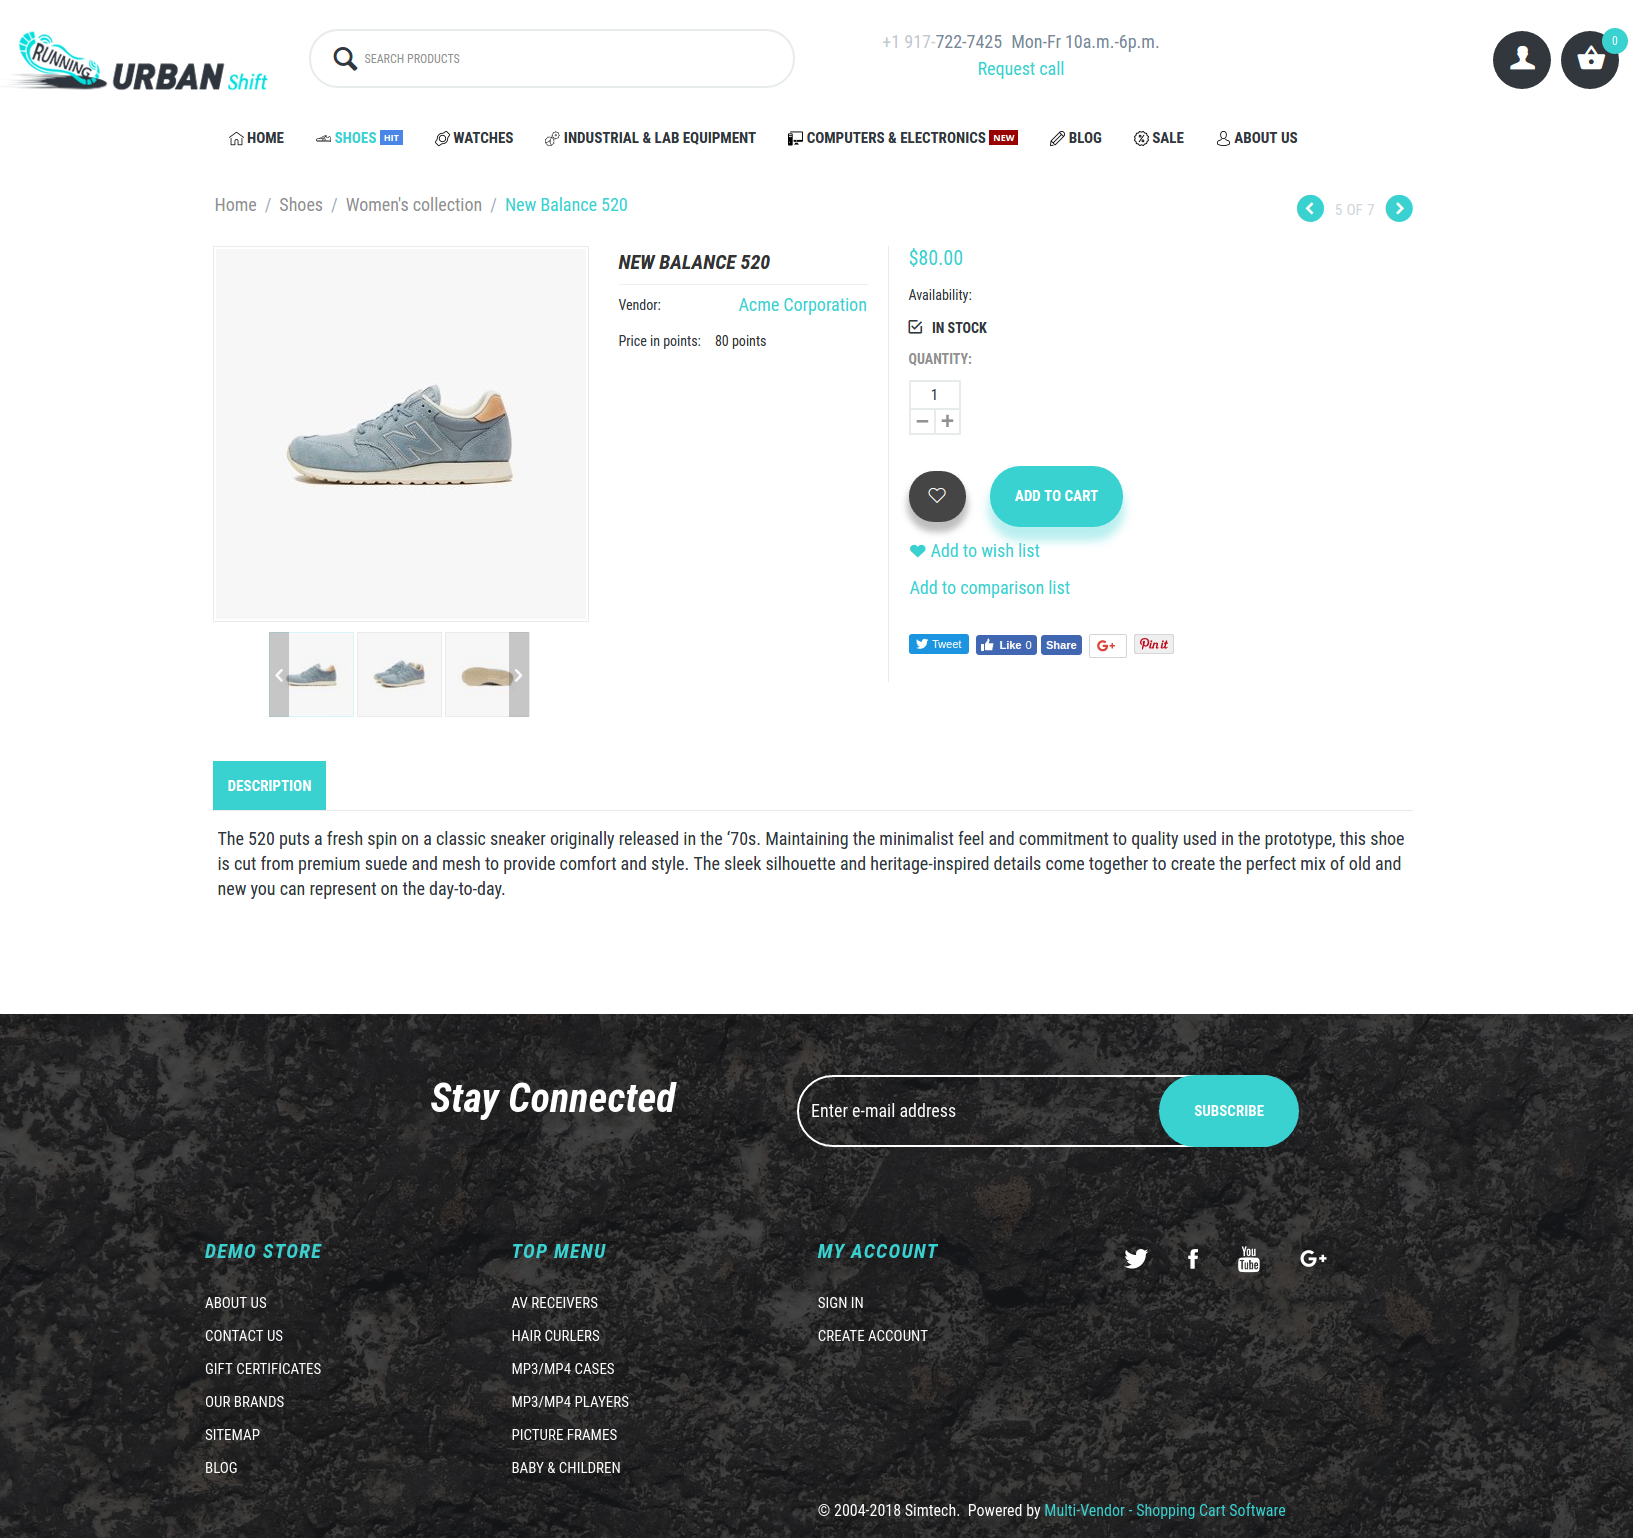 urban-shift-product-page.png?15166149945